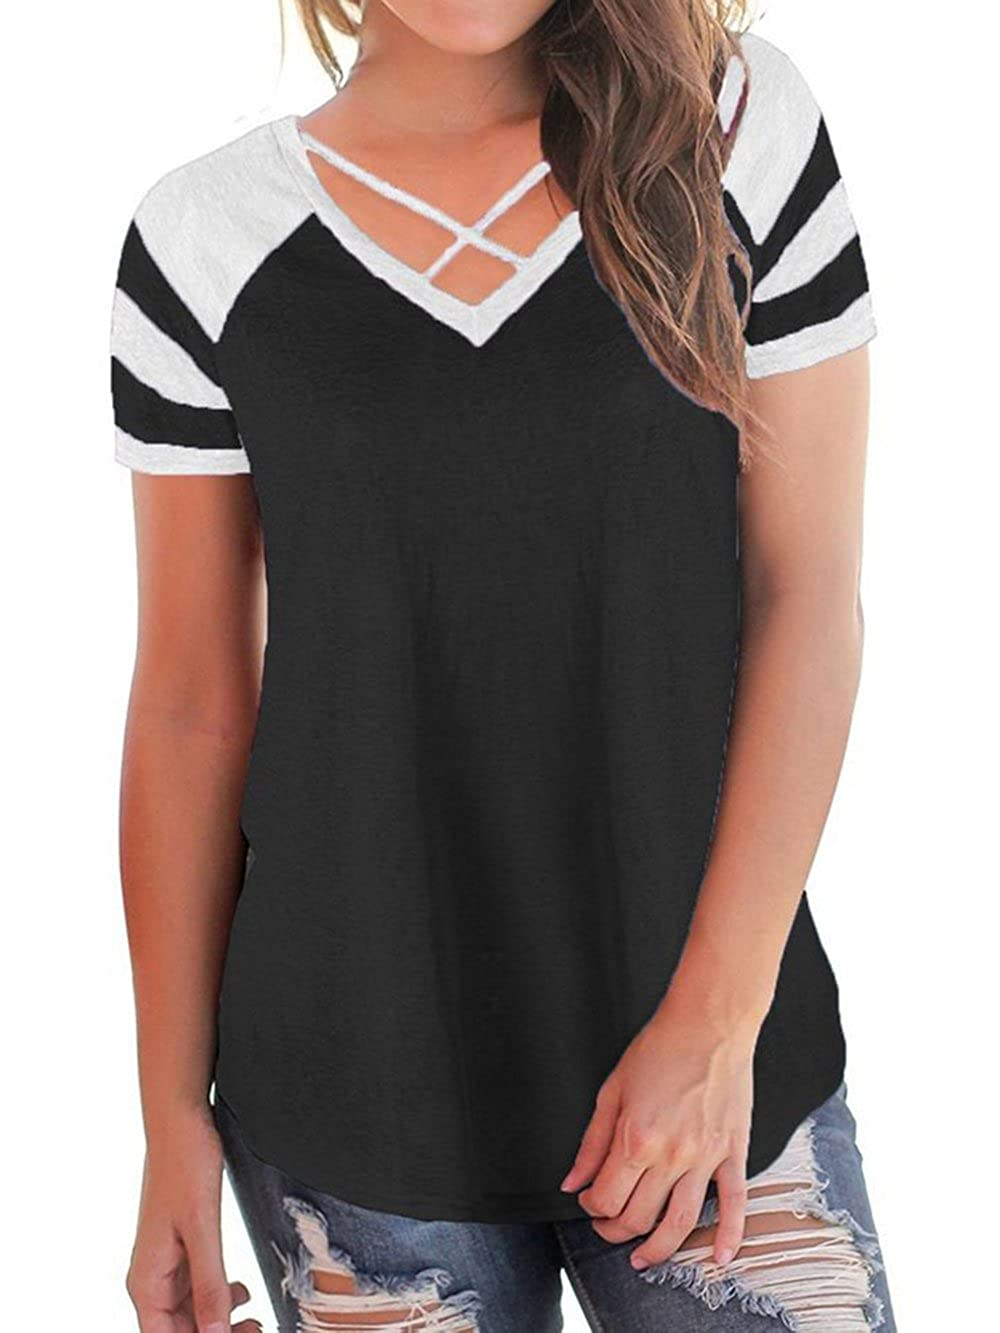 ecf8d1d9b82 Amazon.com  Womens Summer Short Raglan Sleeve V Neck T Shirts Loose Criss  Cross Curve Hem Casual Tee Tops Black  Clothing